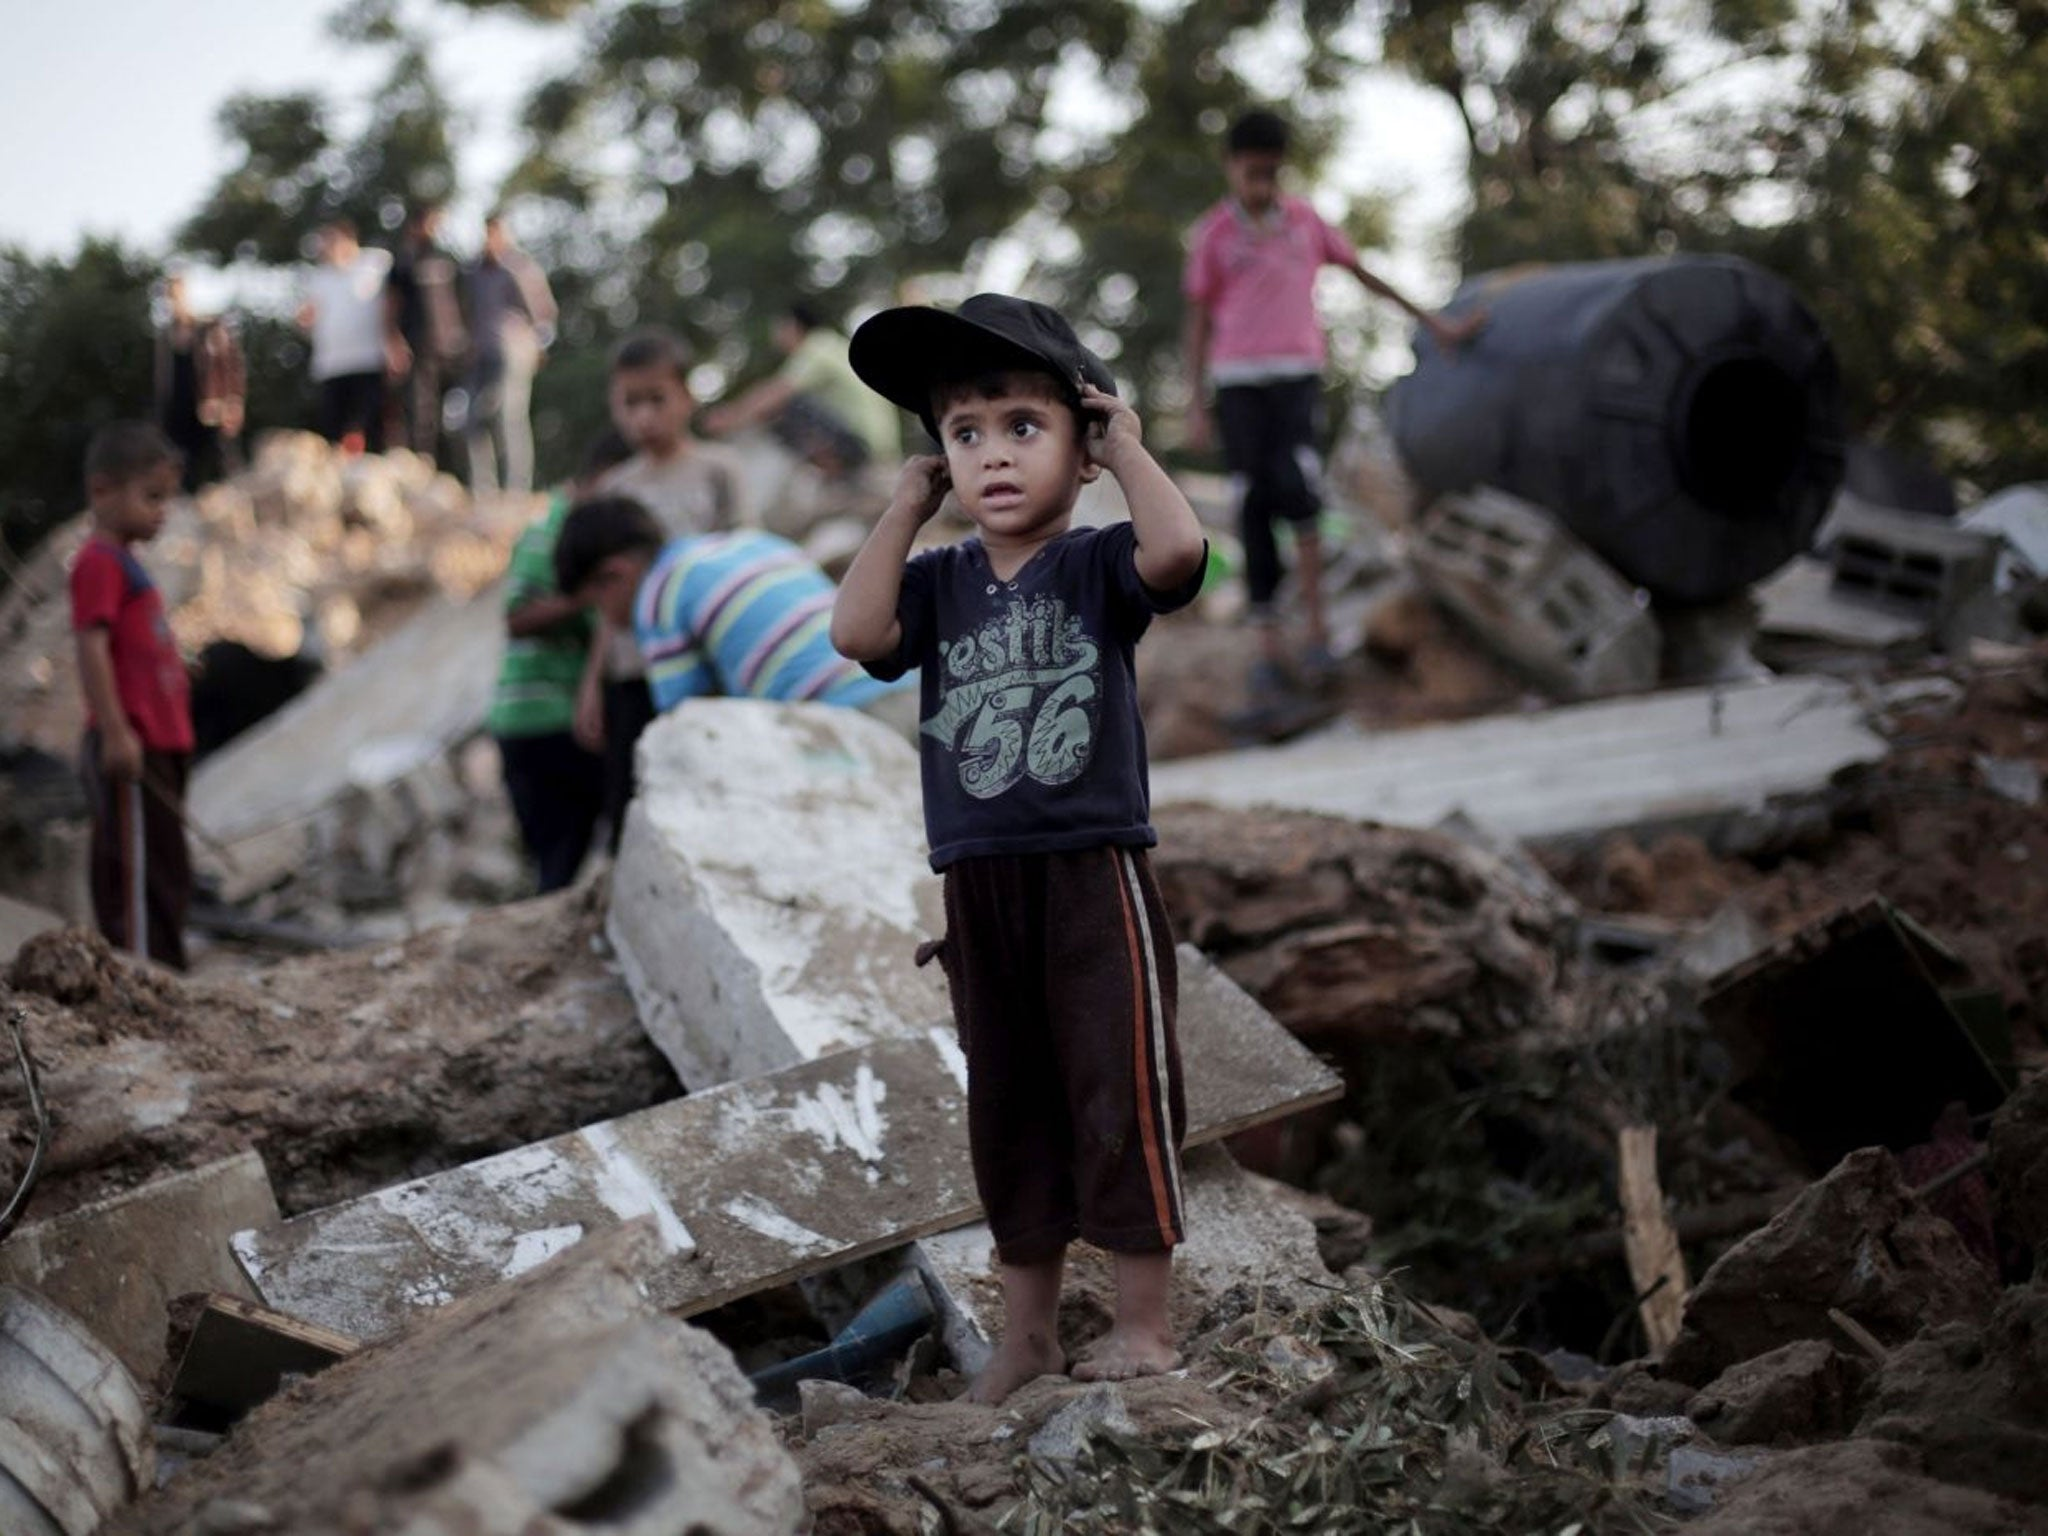 Israel-Gaza violence: Powerful images show scale of destruction in